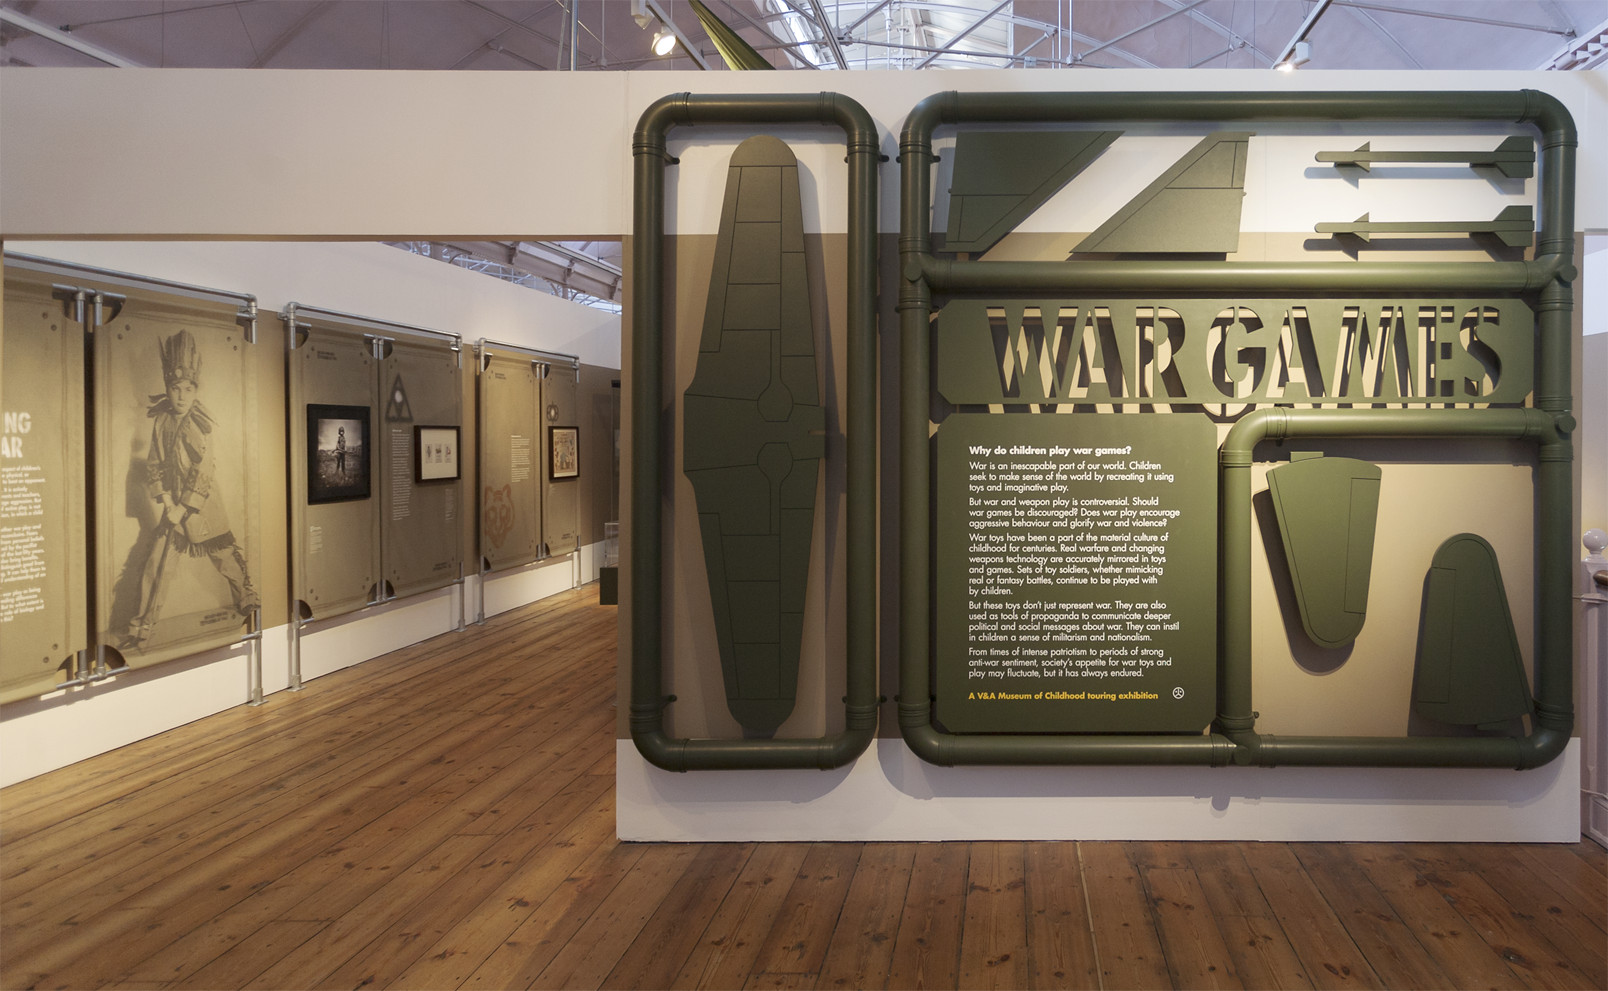 Like an oversized Airfix model kit, objects are mounted to their plastic sprues and flank the entrance marking the beginning of the exhibition.